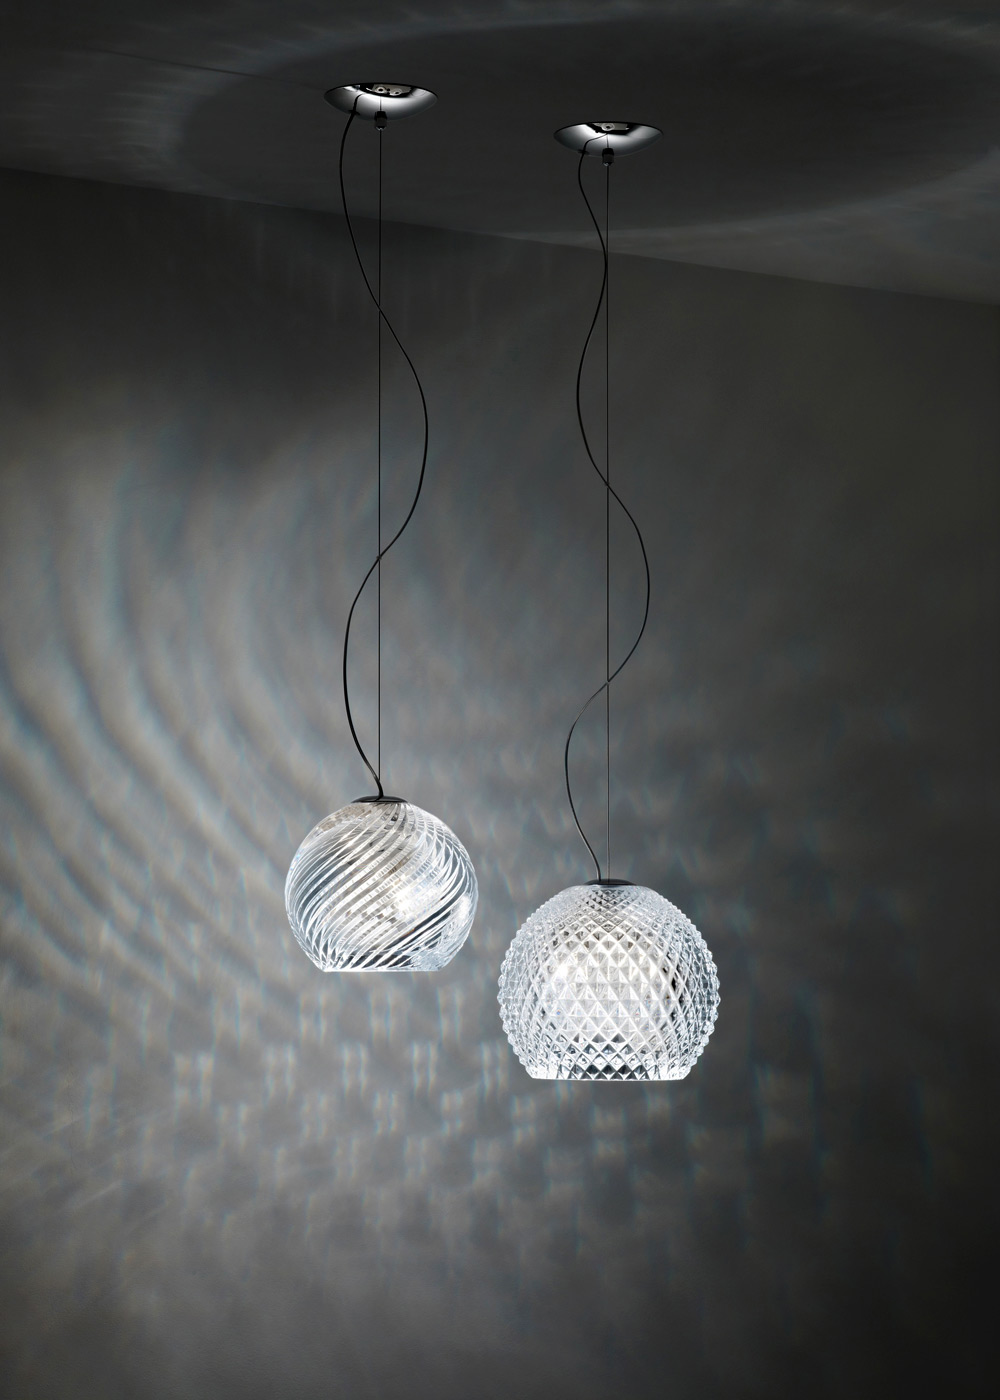 Diamond-Swirl Lamp, Bridgewell Consulting LTD, Fabbian, 2008